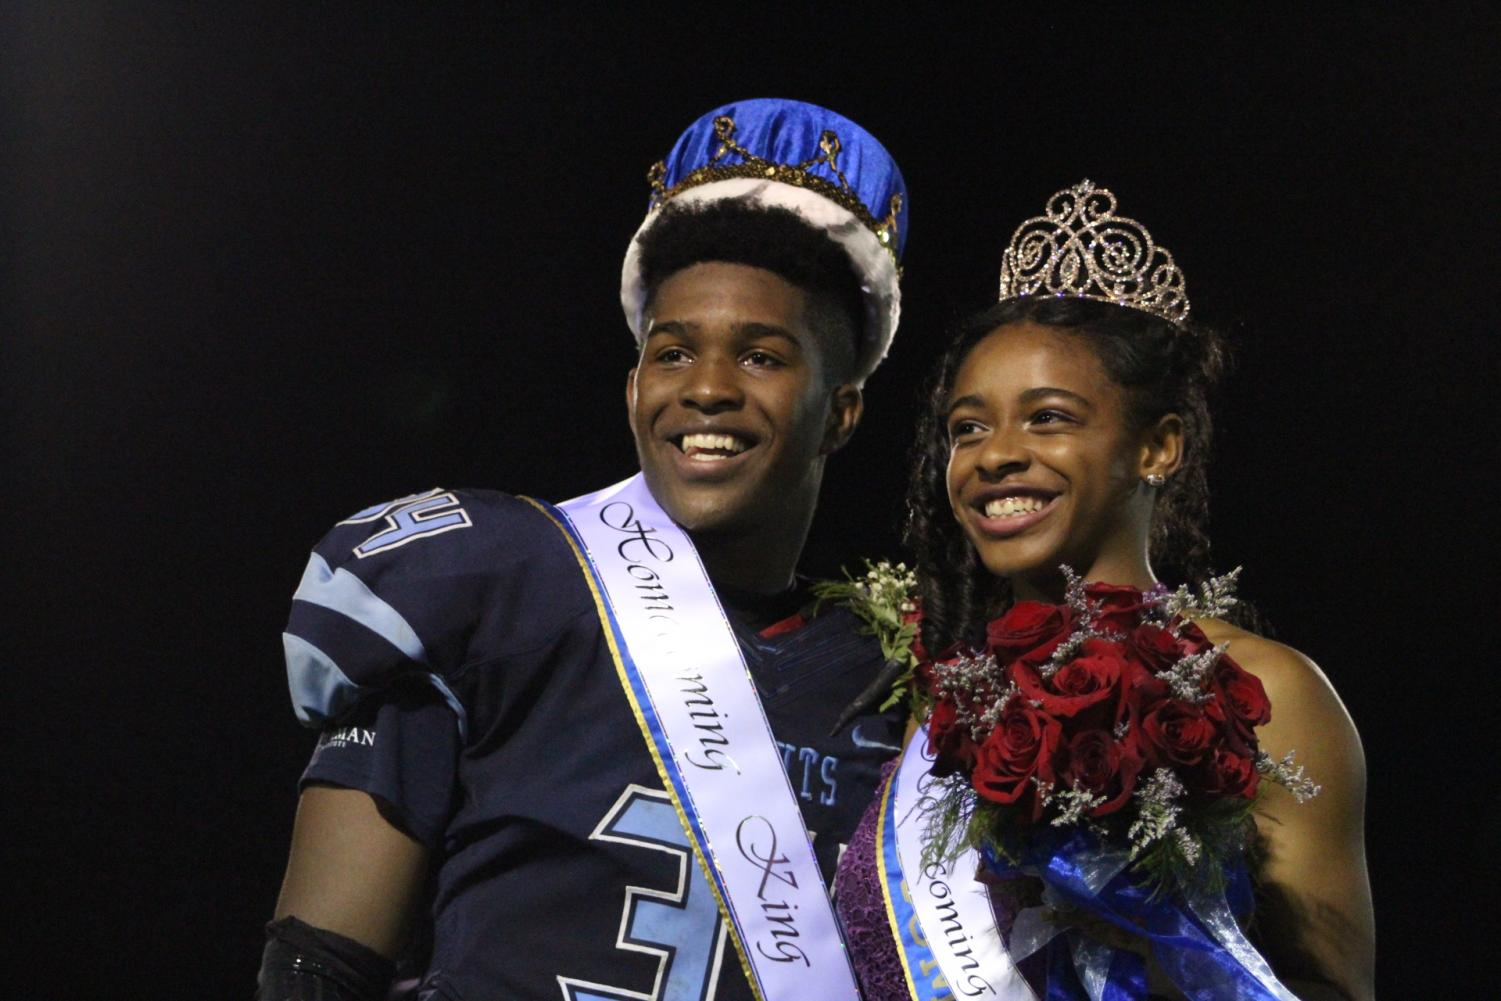 White and Faison crowned homecoming king and queen.